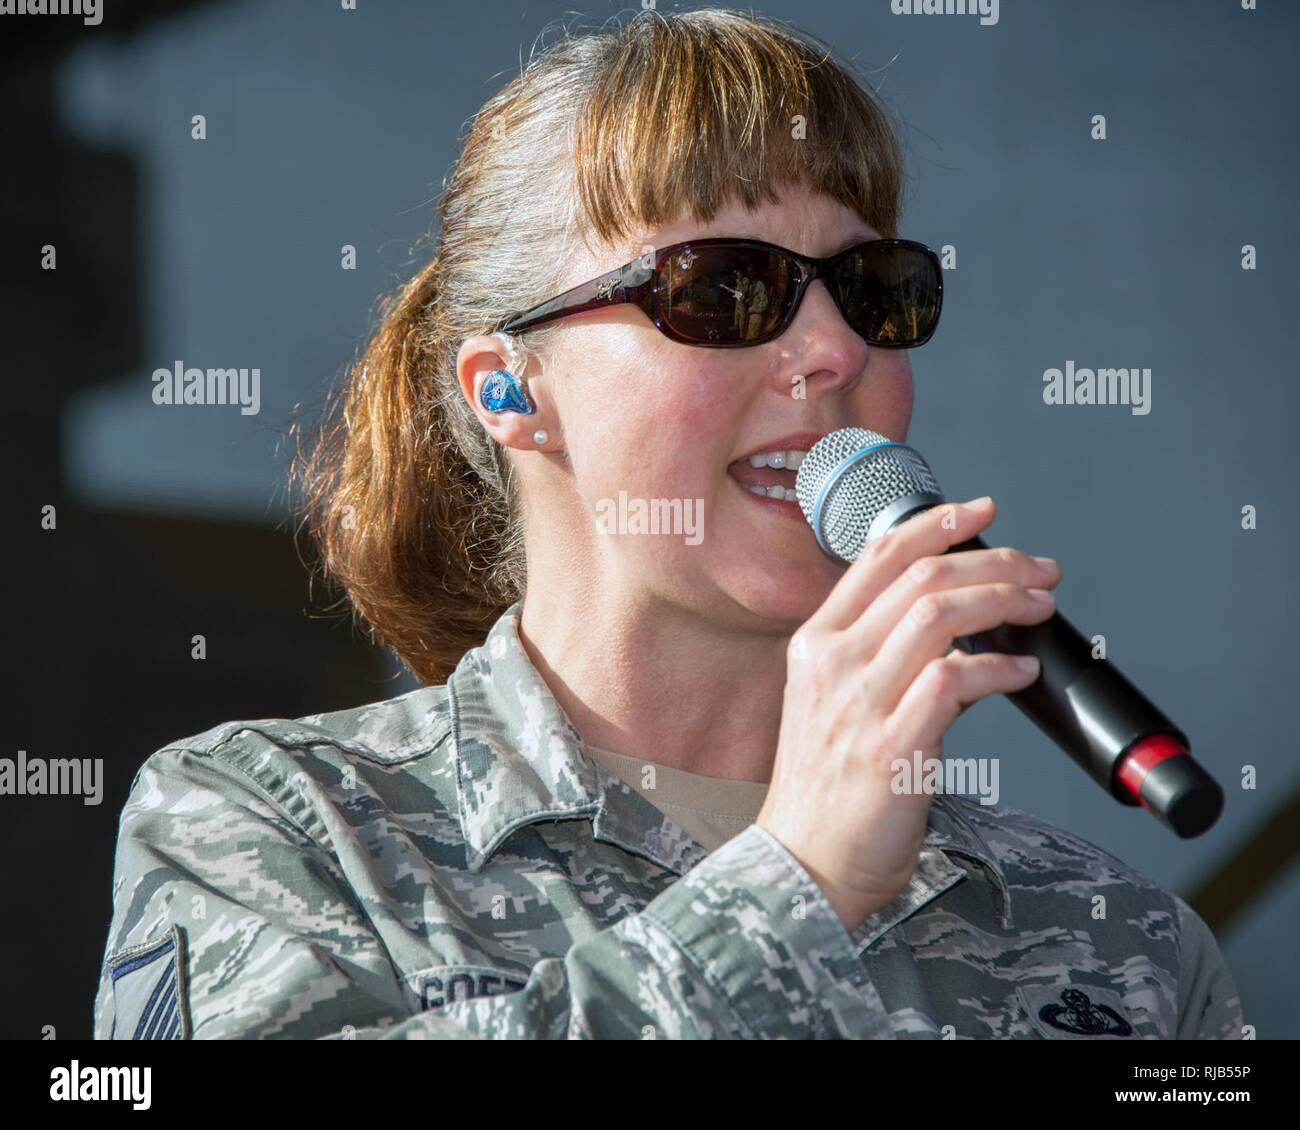 Le sergent chef de l'US Air Force. Paula Goetz, chanteur du